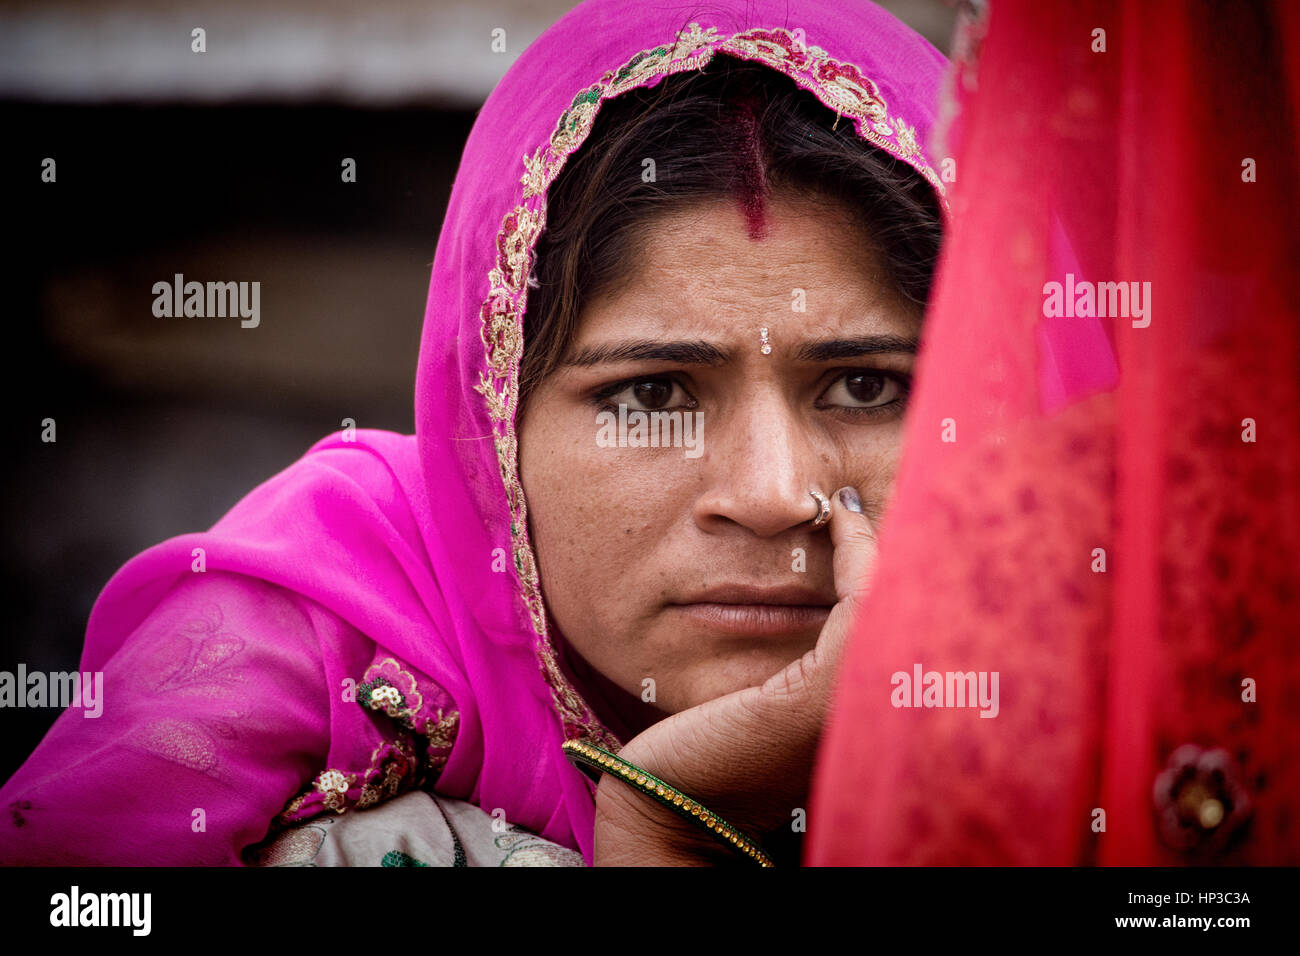 Indian Nose Ring Stock Photos & Indian Nose Ring Stock Images - Alamy